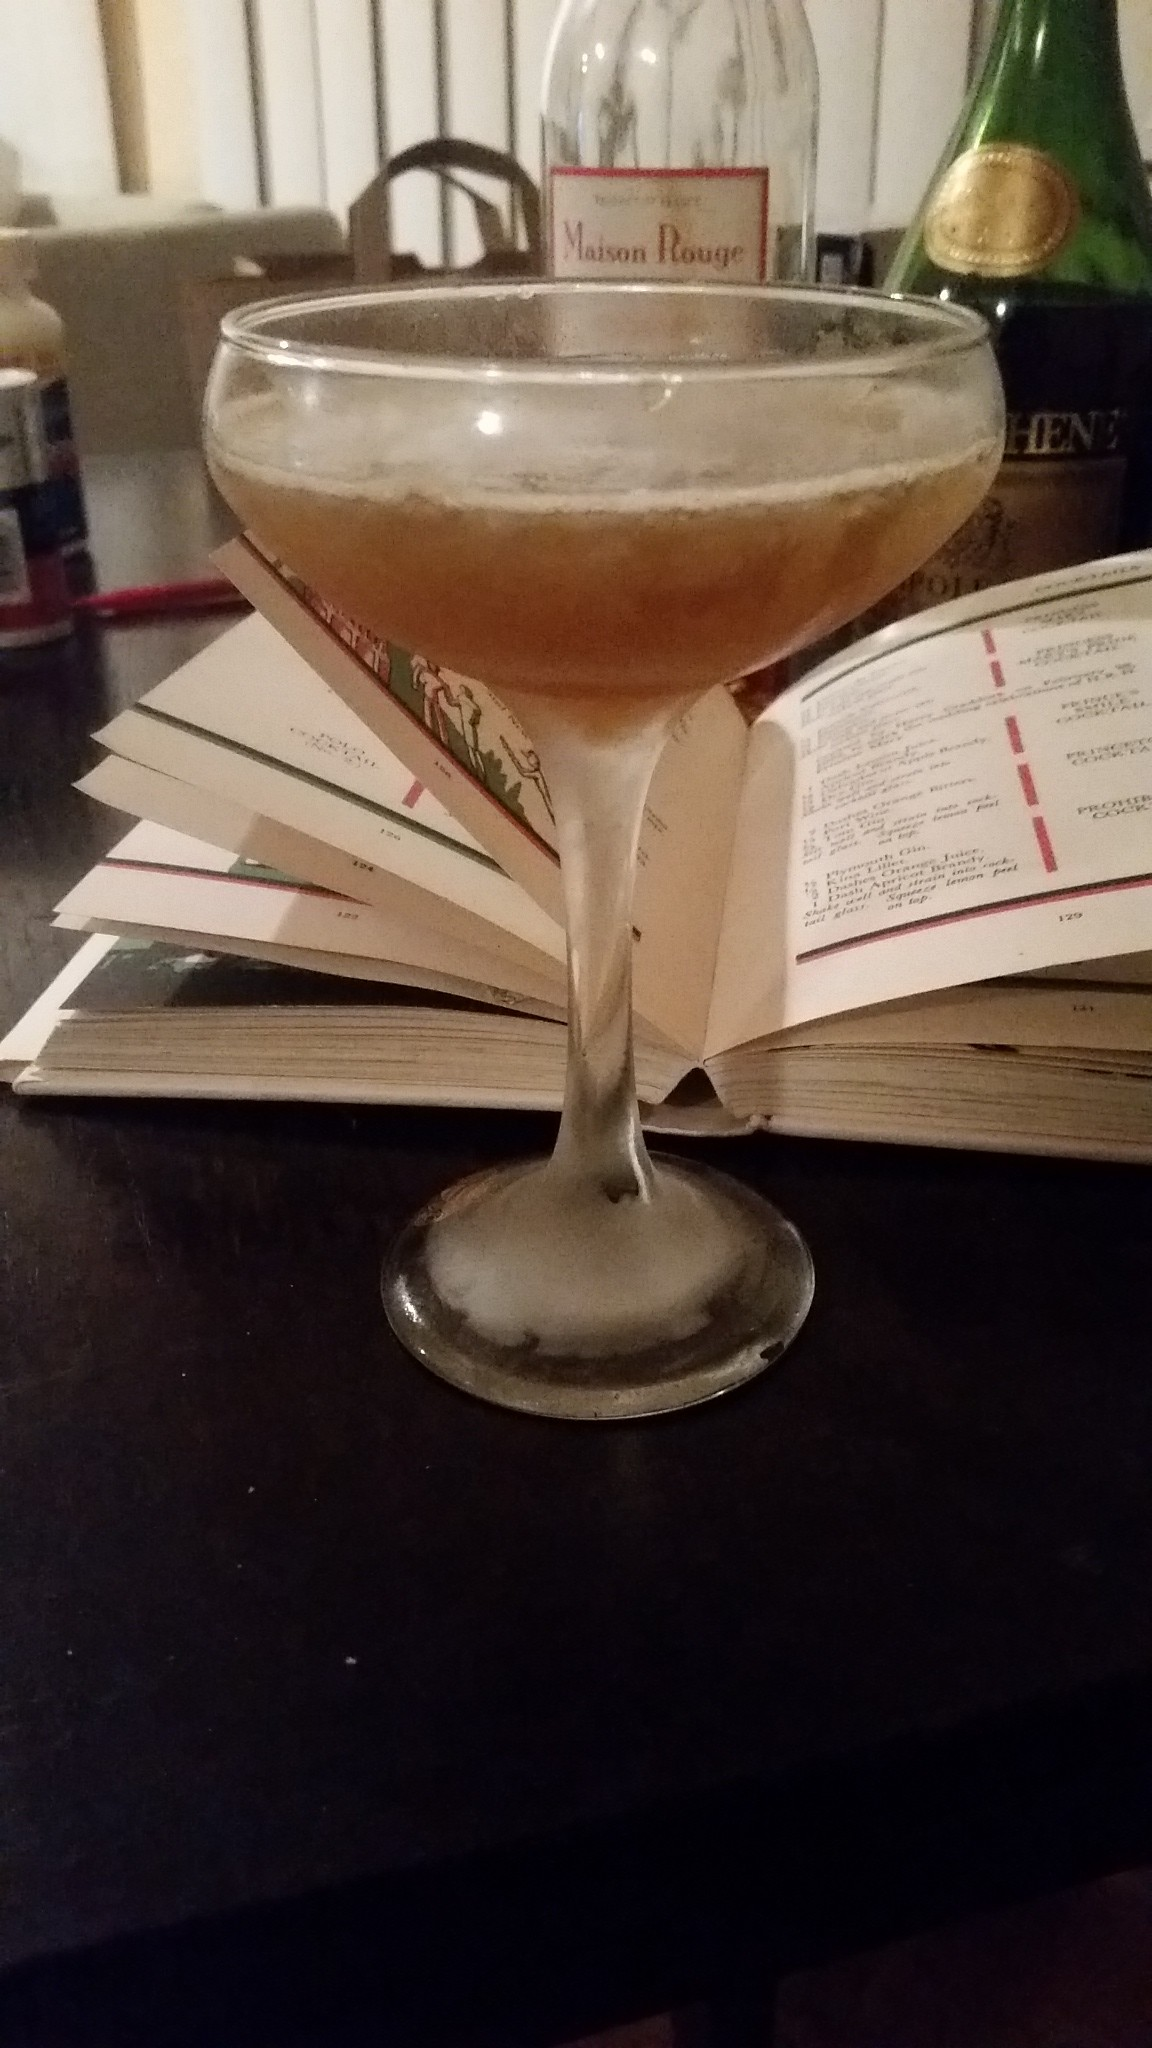 The Presto Cocktail.